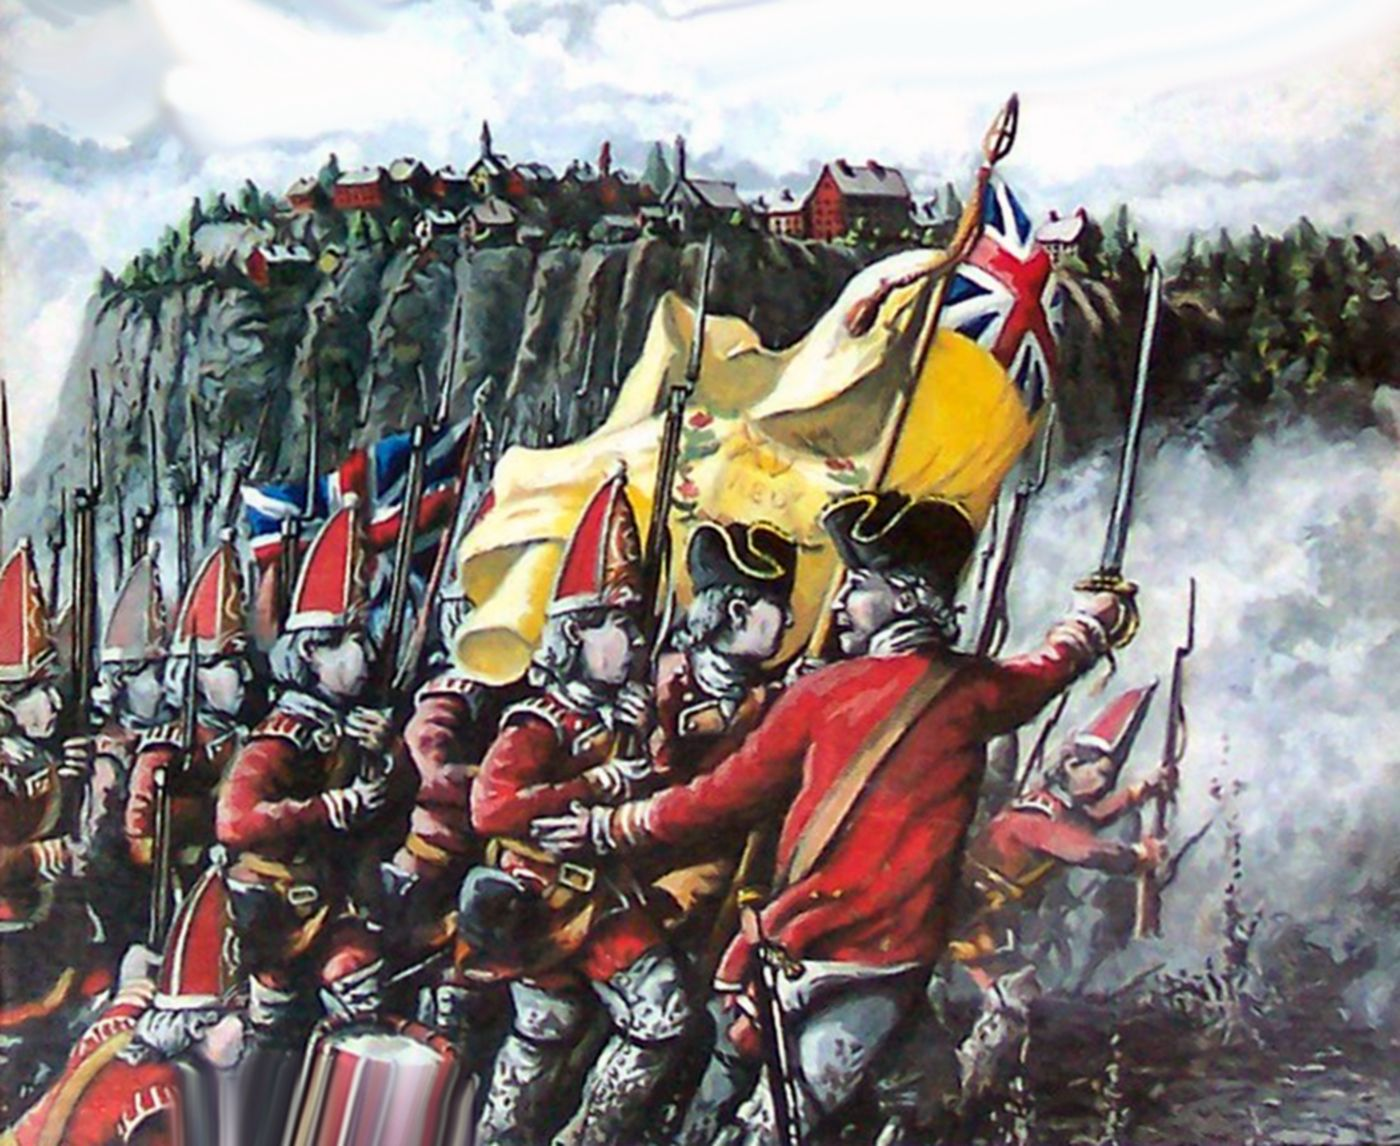 British grenadiers at the Battle of Quebec, Seven Years War